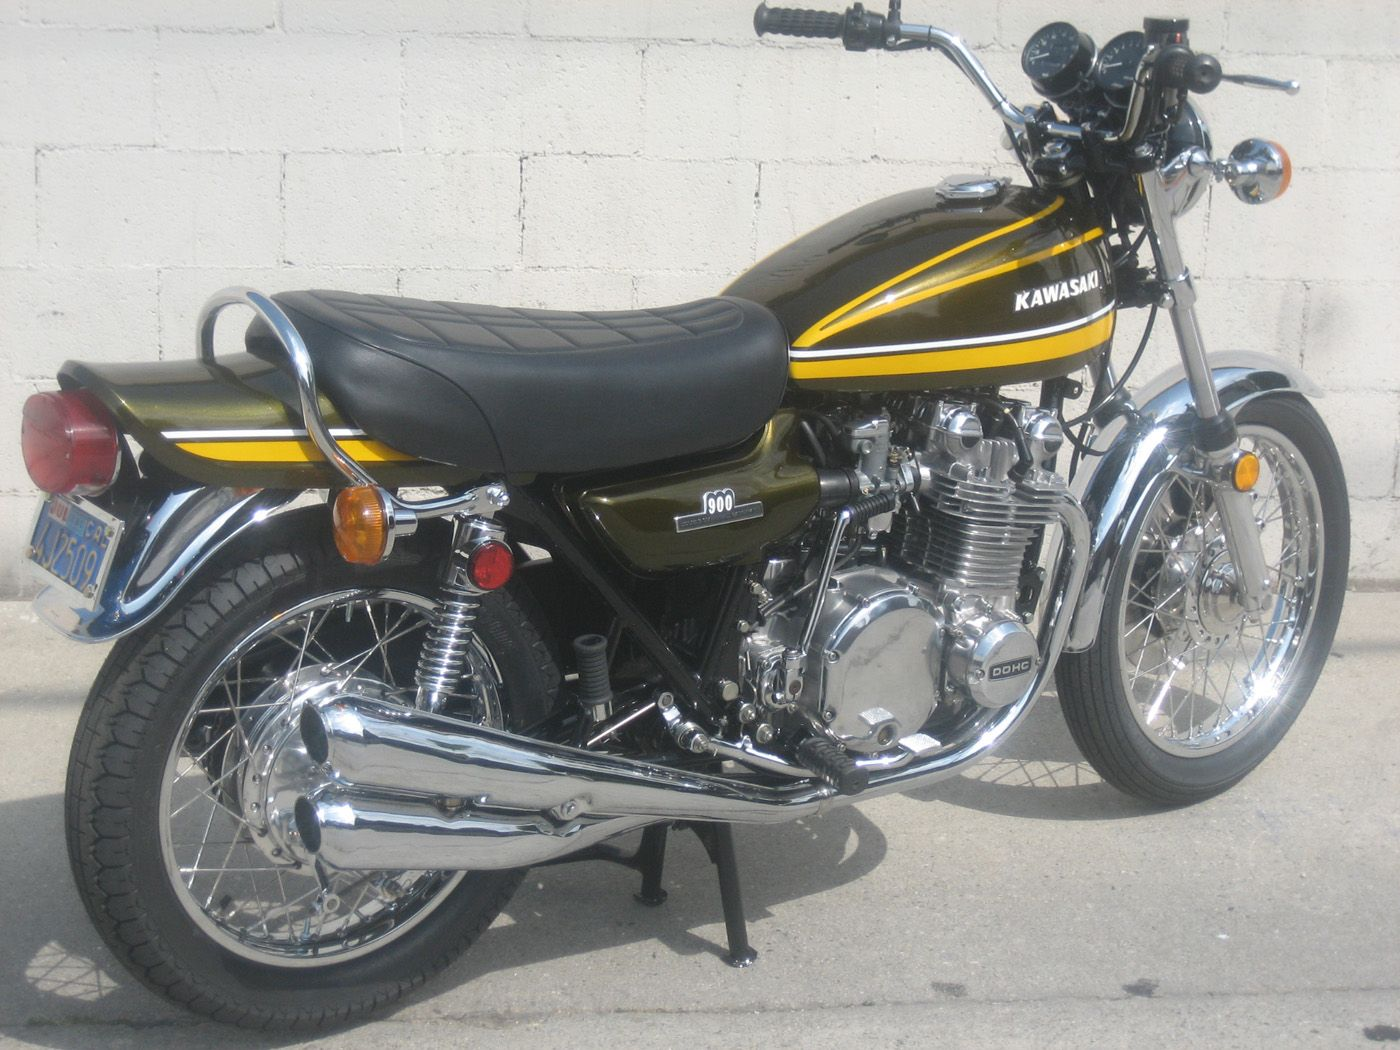 kawasaki 900 z1 1974 kawasaki z1 900 bike 39 s. Black Bedroom Furniture Sets. Home Design Ideas